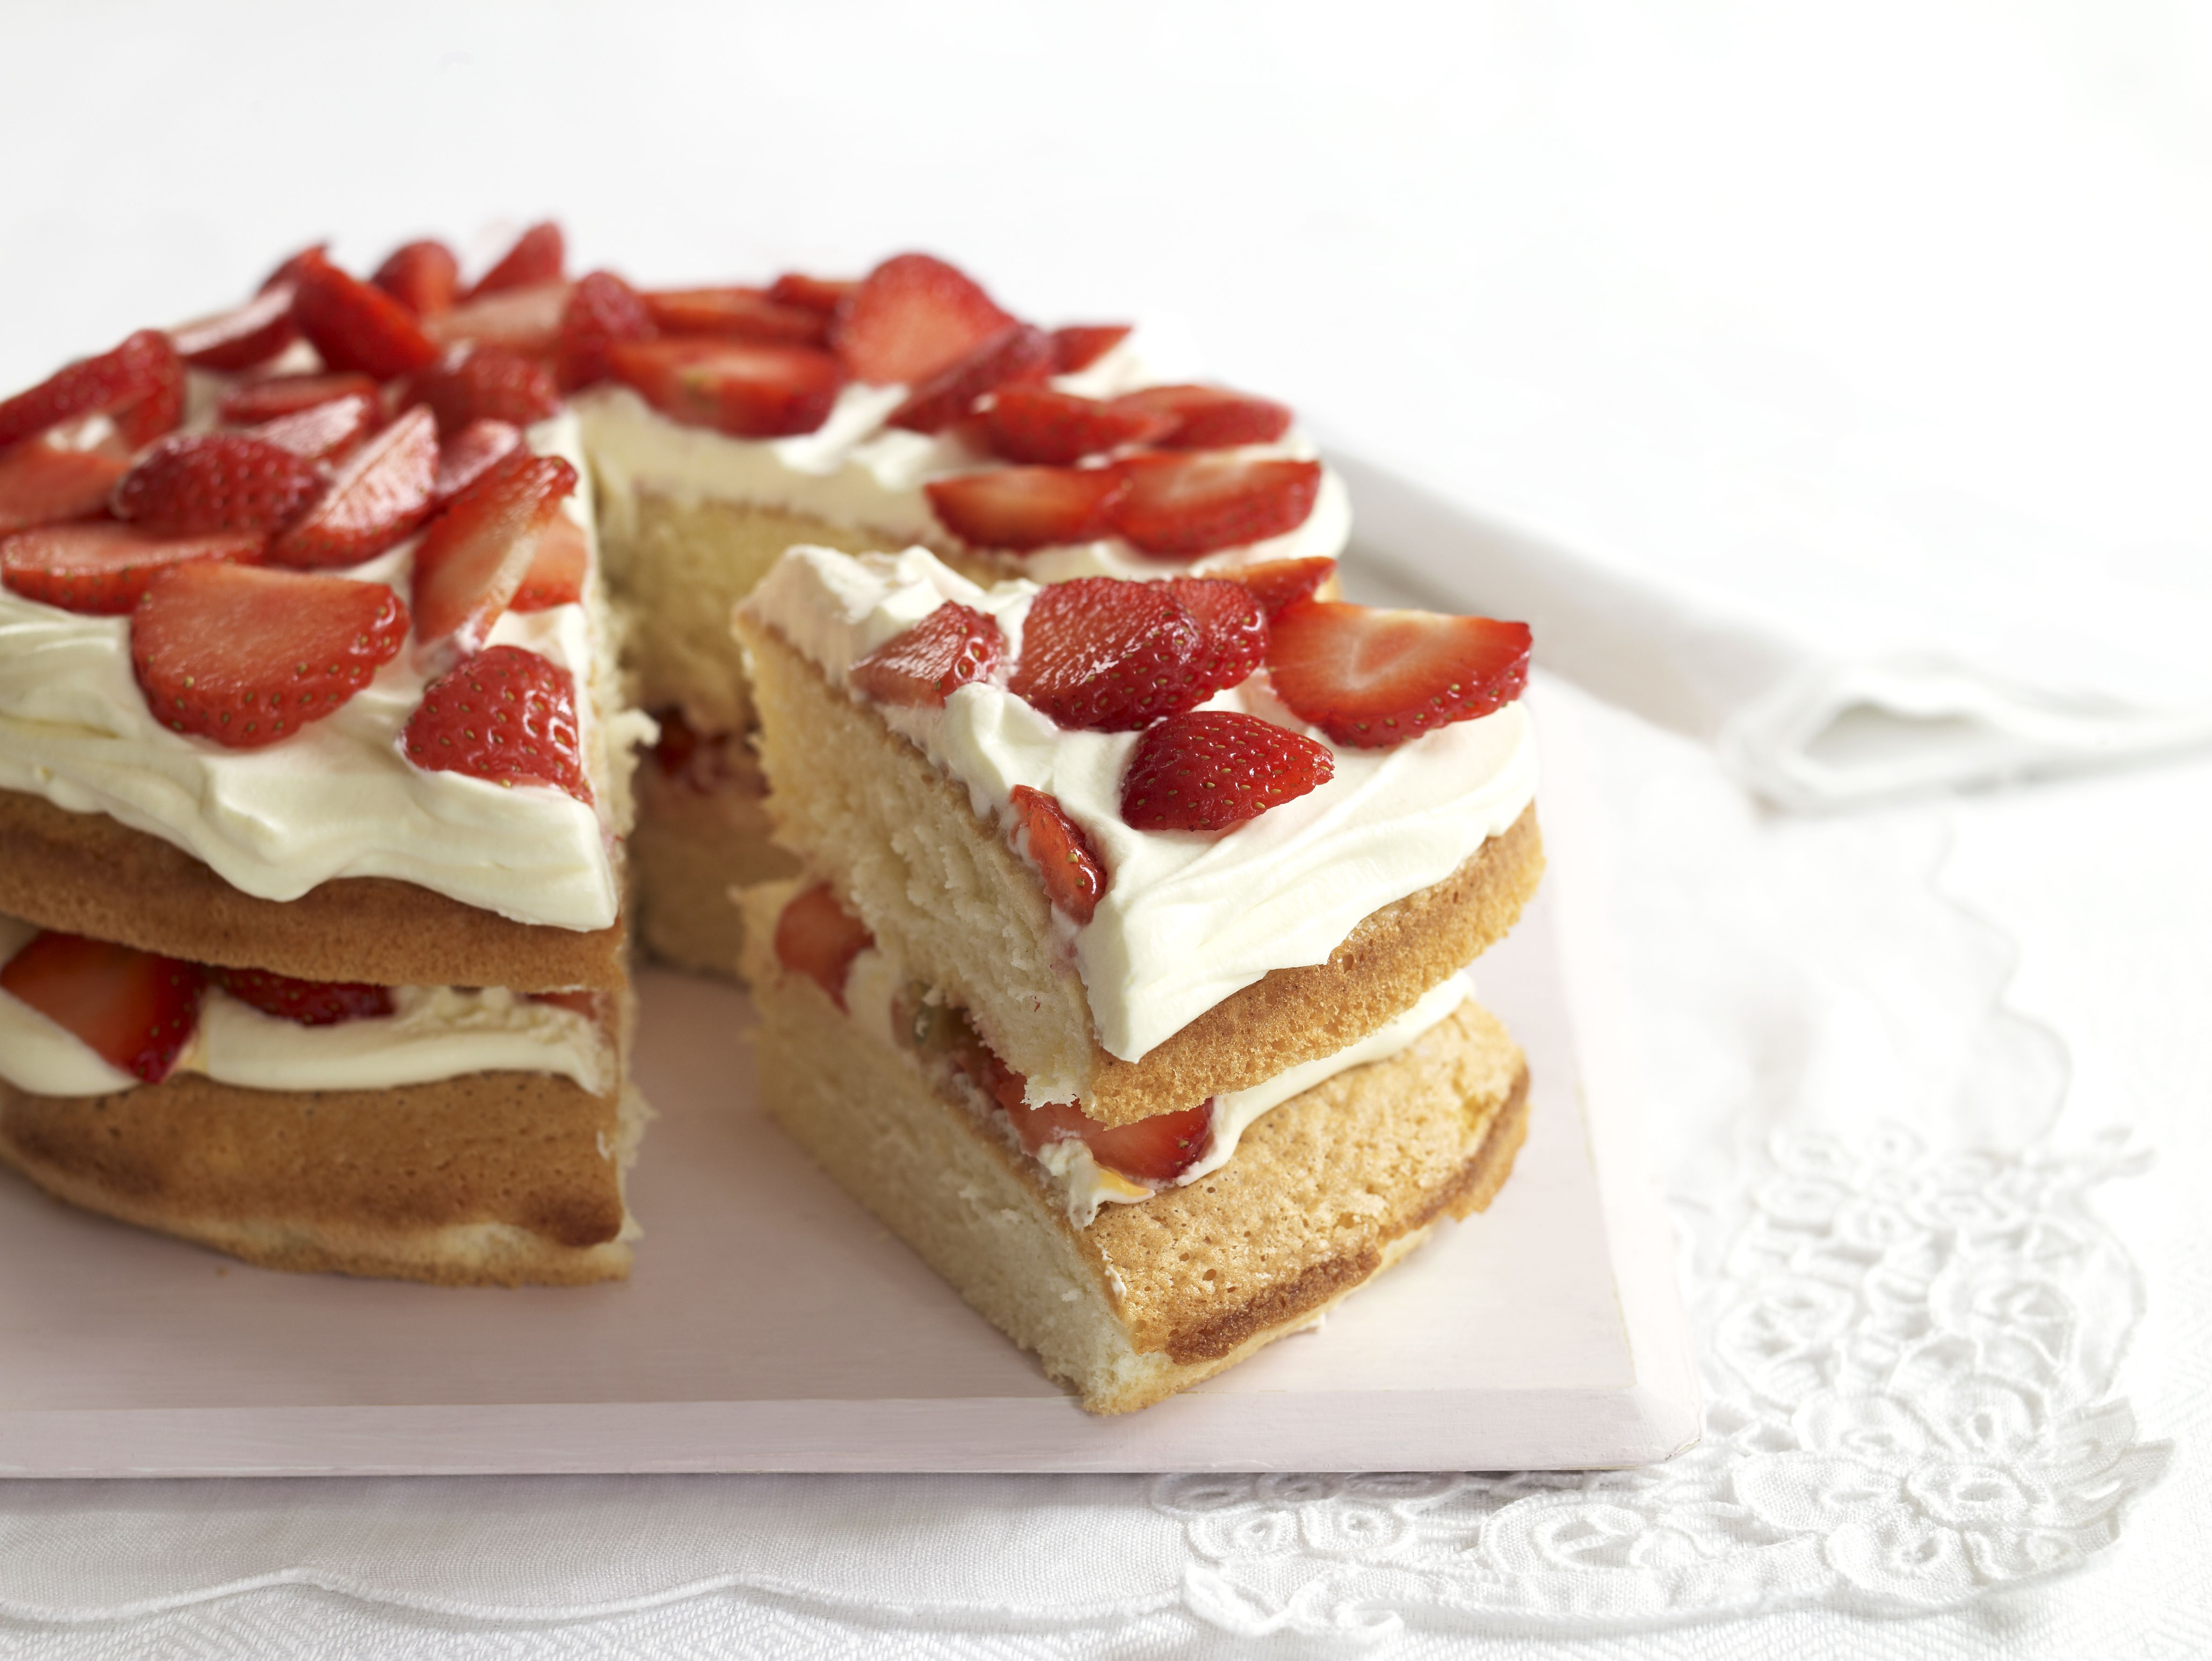 Strawberry Sponge Cake With Cream Is a Perfect Easter Dessert